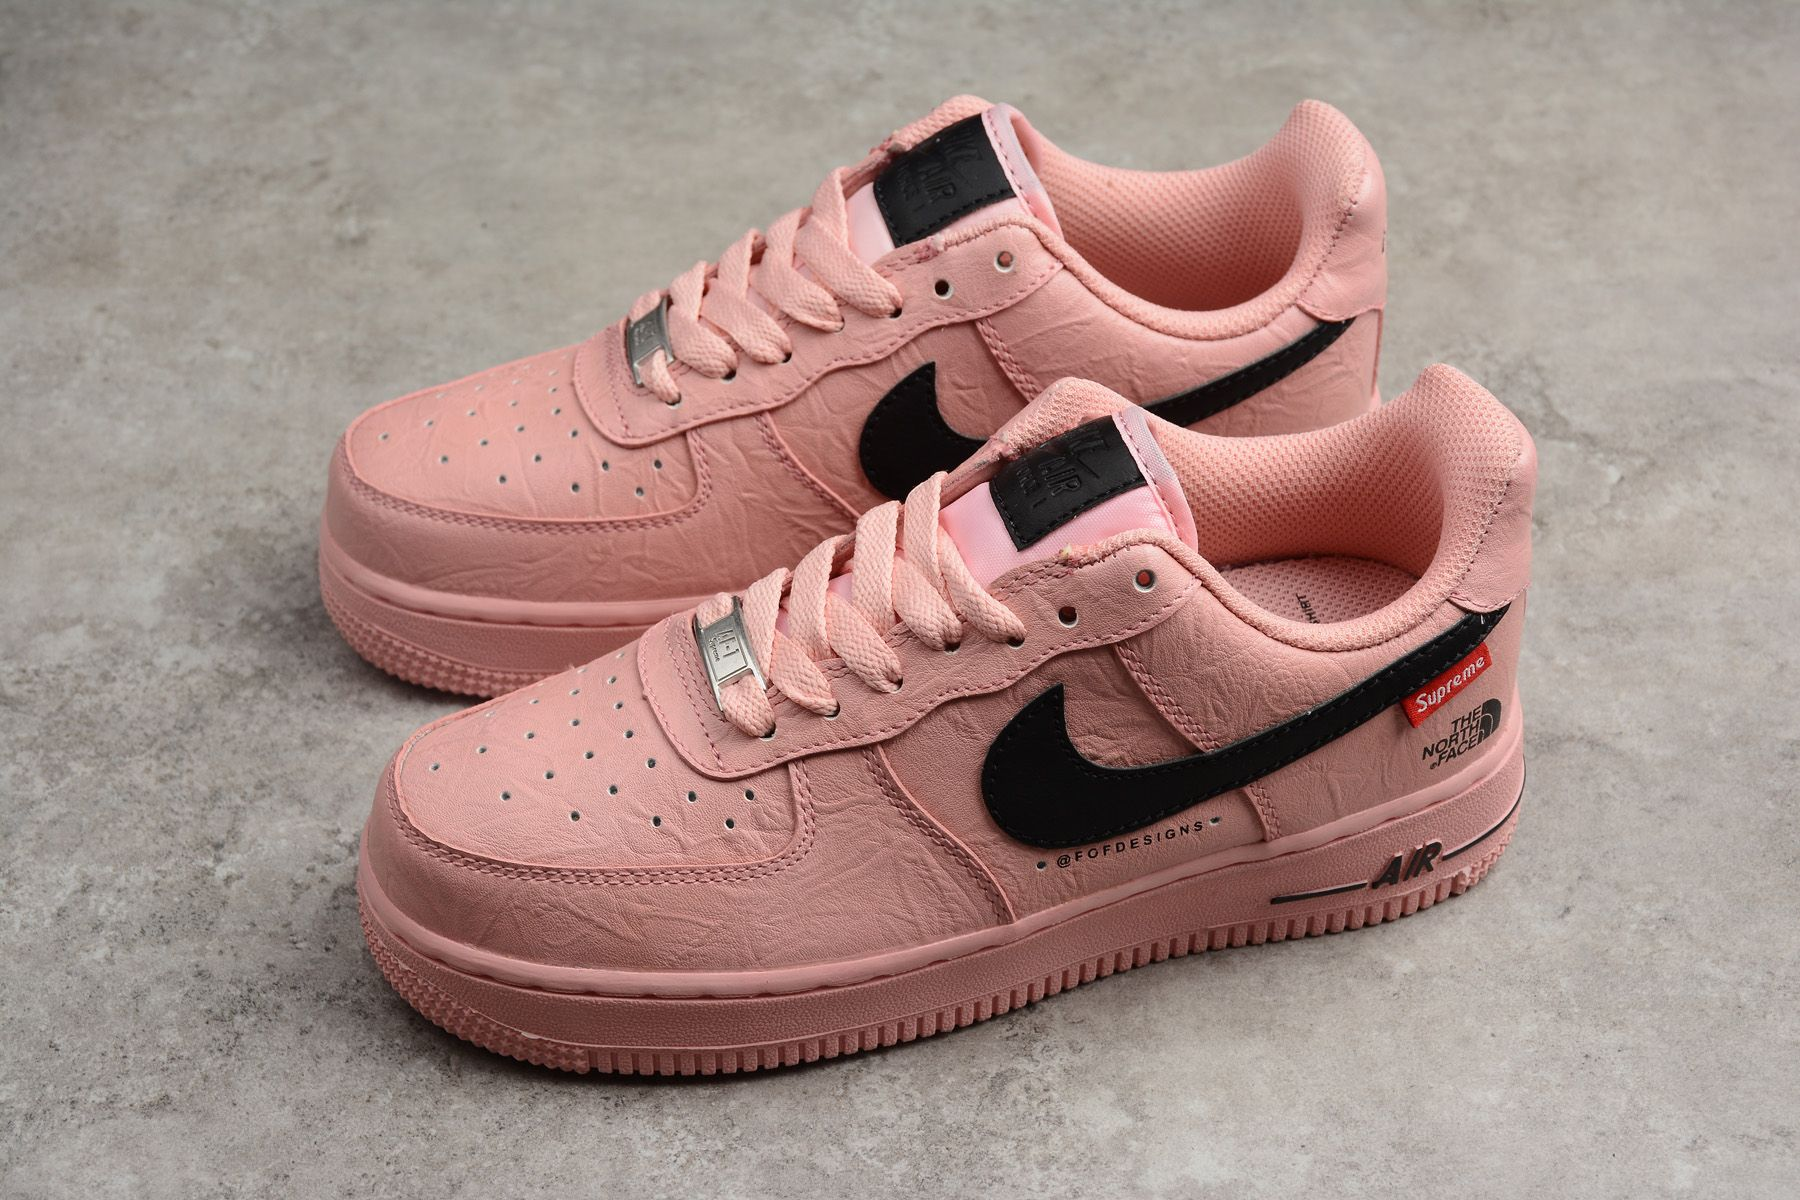 Supreme X The North Face X Nike Air Force 1 07 Pink Black Ar3066 800 For Women Hype Shoes Leather Shoes Woman Athletic Shoes